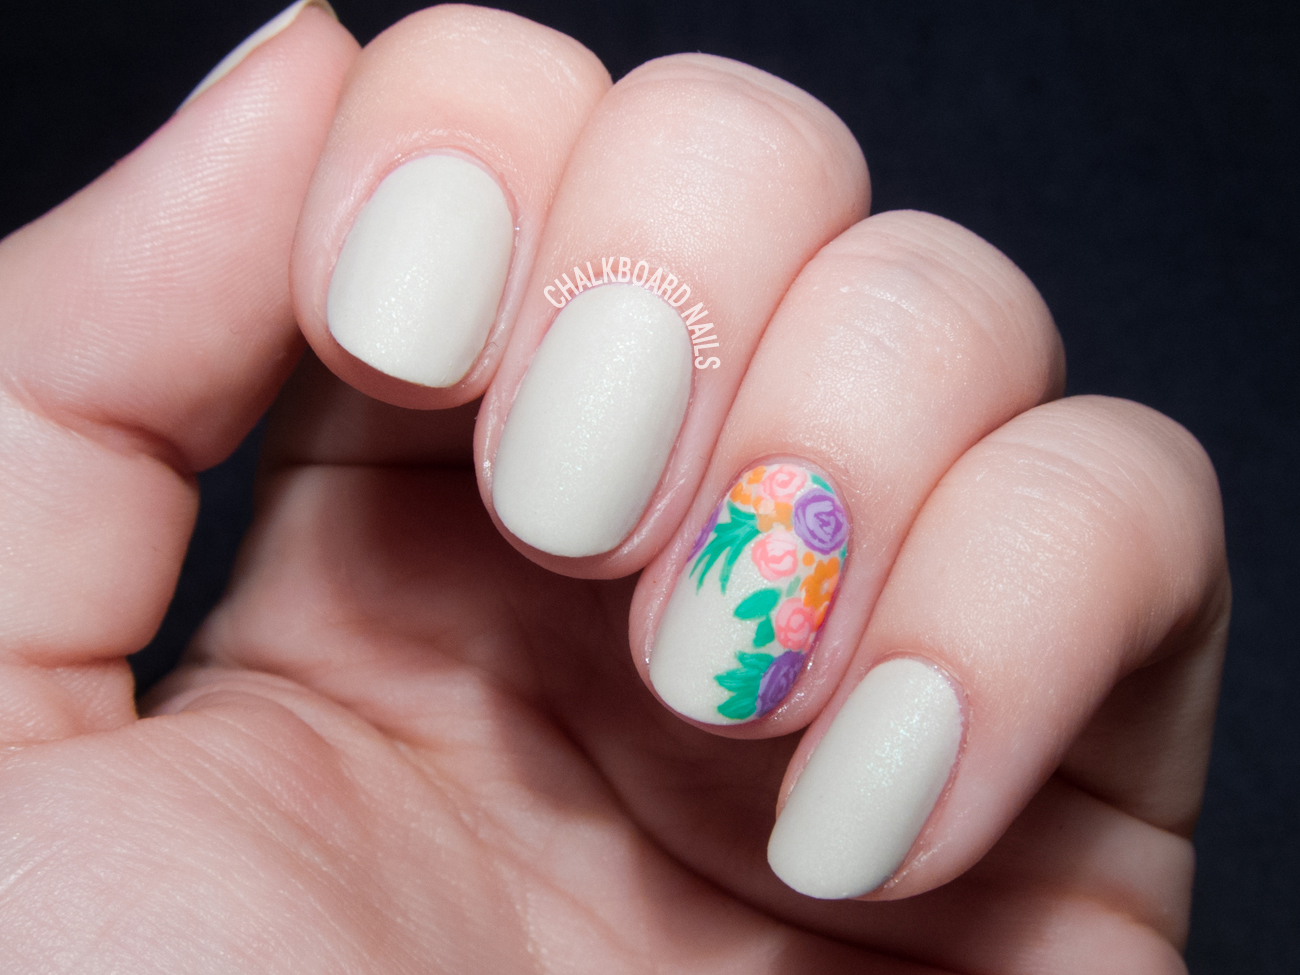 Floral bouquet accent nail by @chalkboardnails